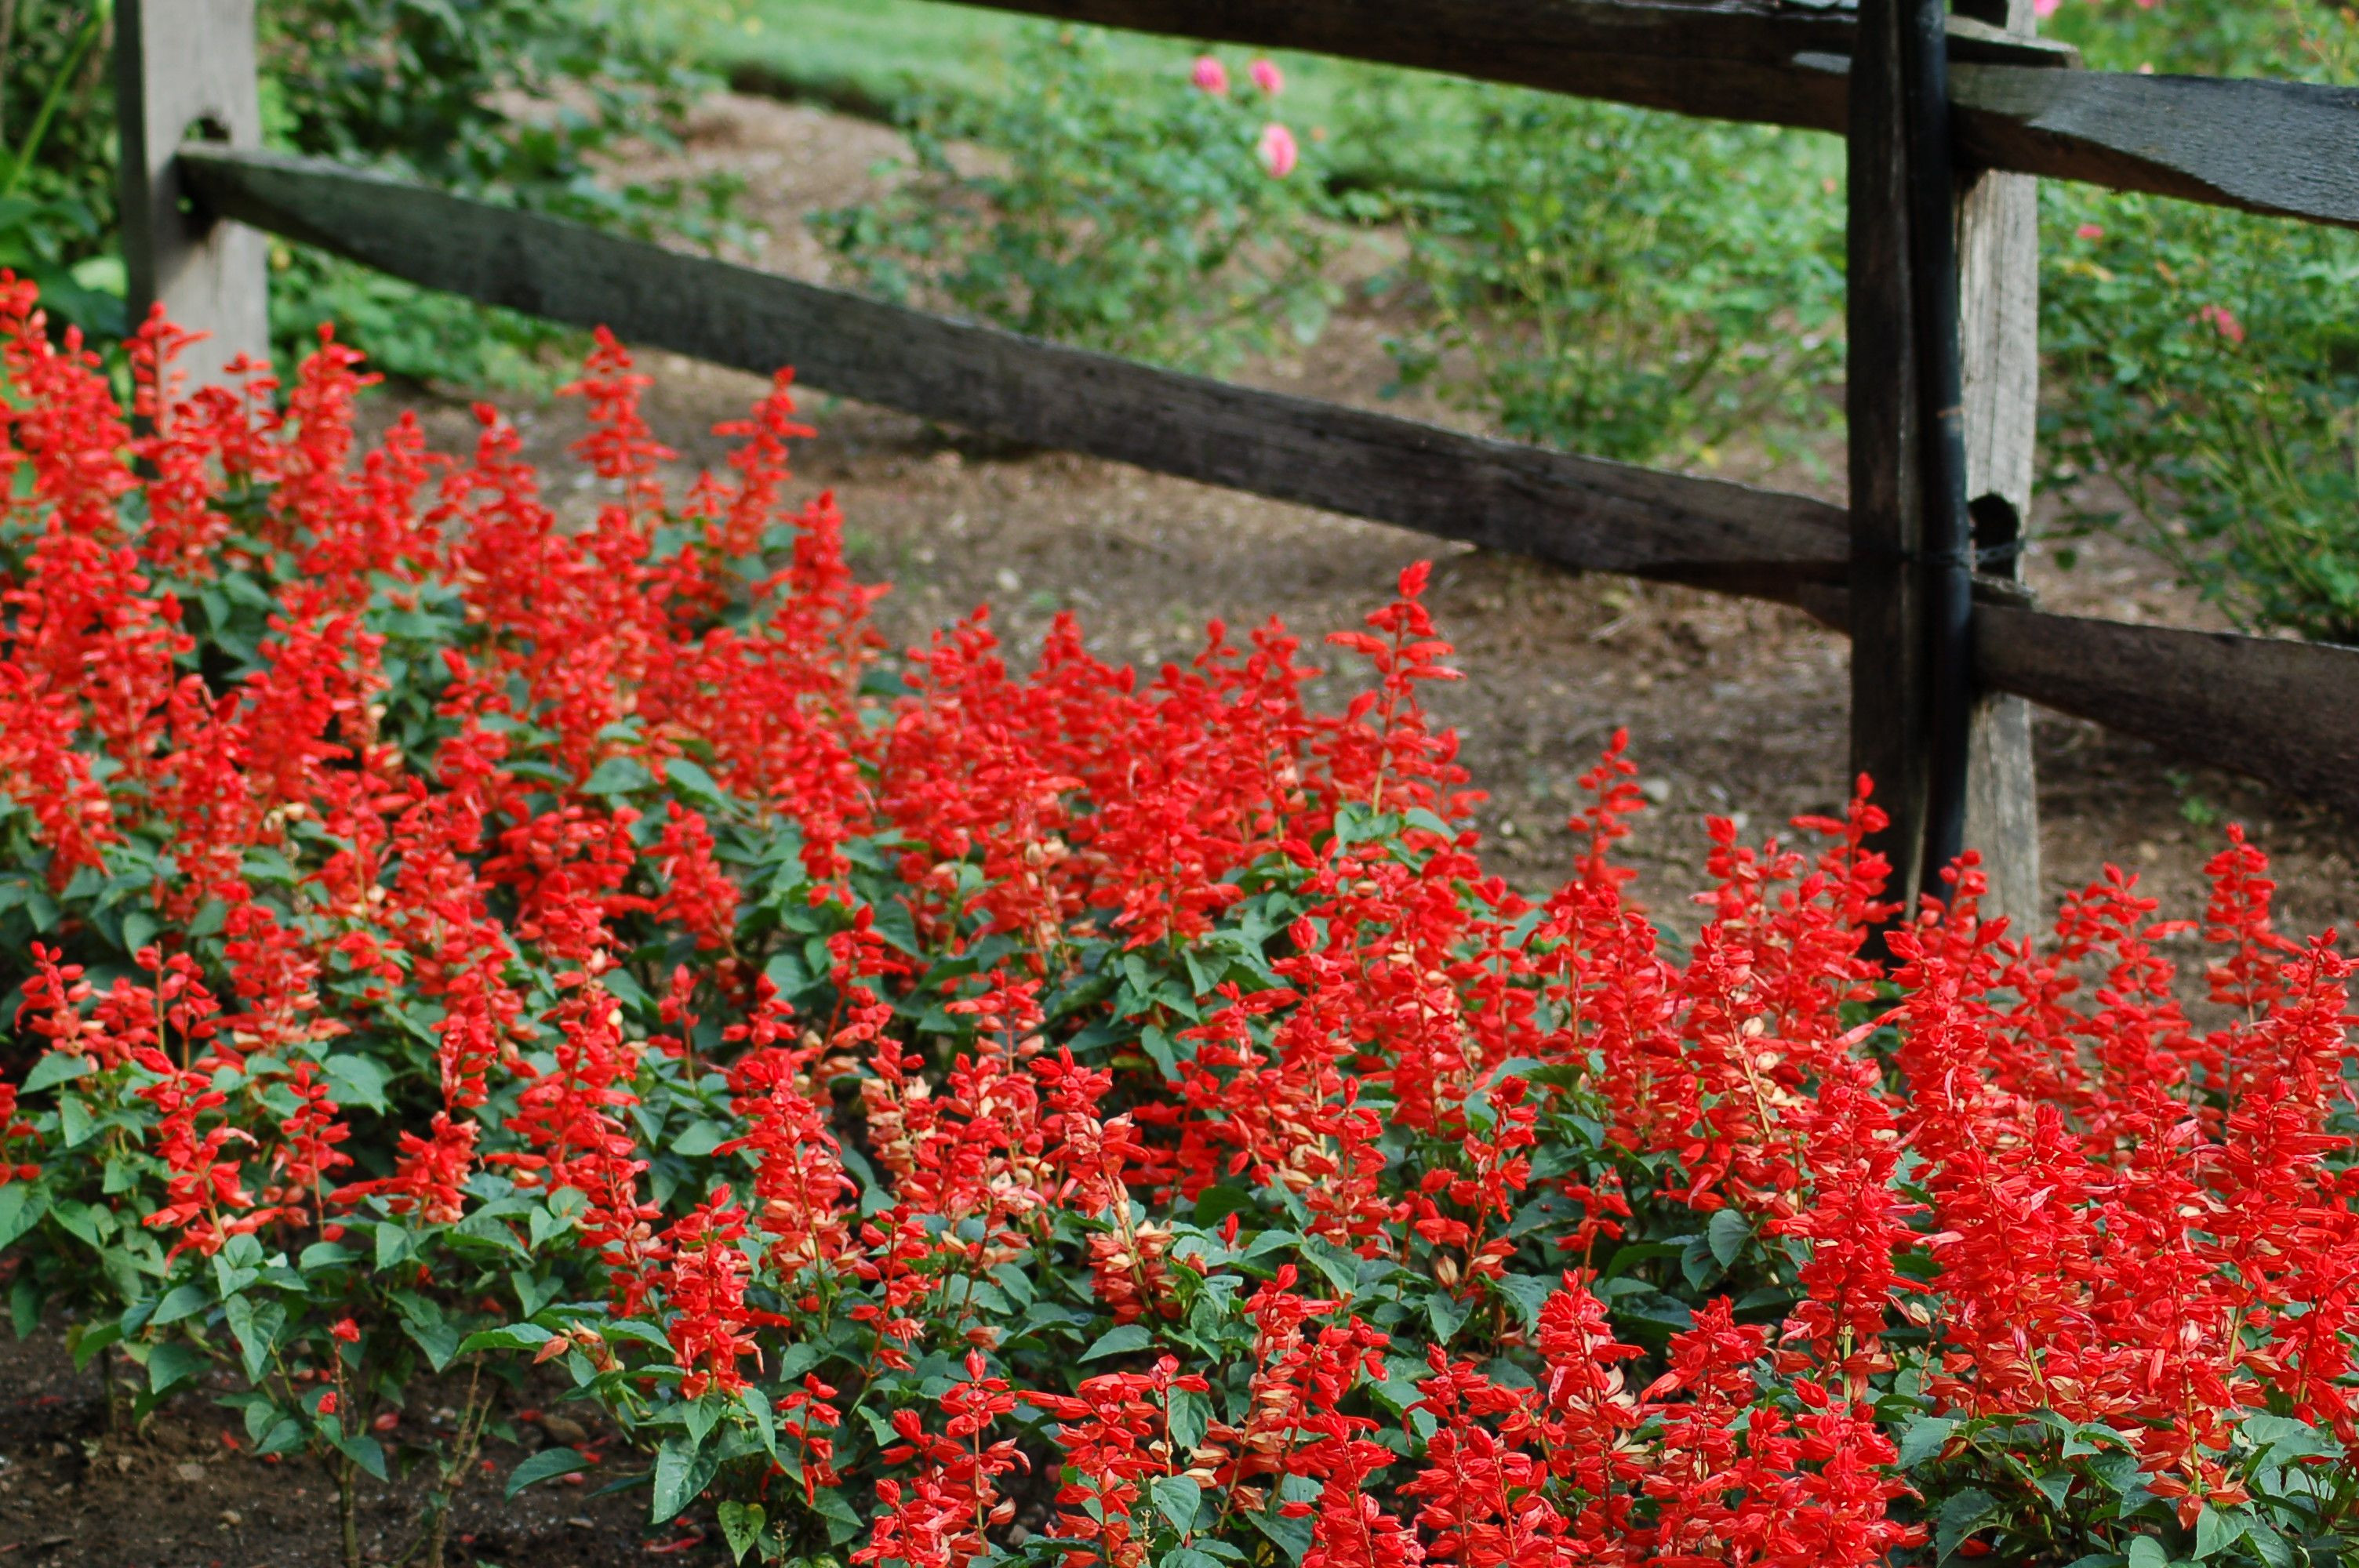 These red salvia plants make for an eye catching planting in front of a post and rail fence They are annuals but well worth planting when you need to have